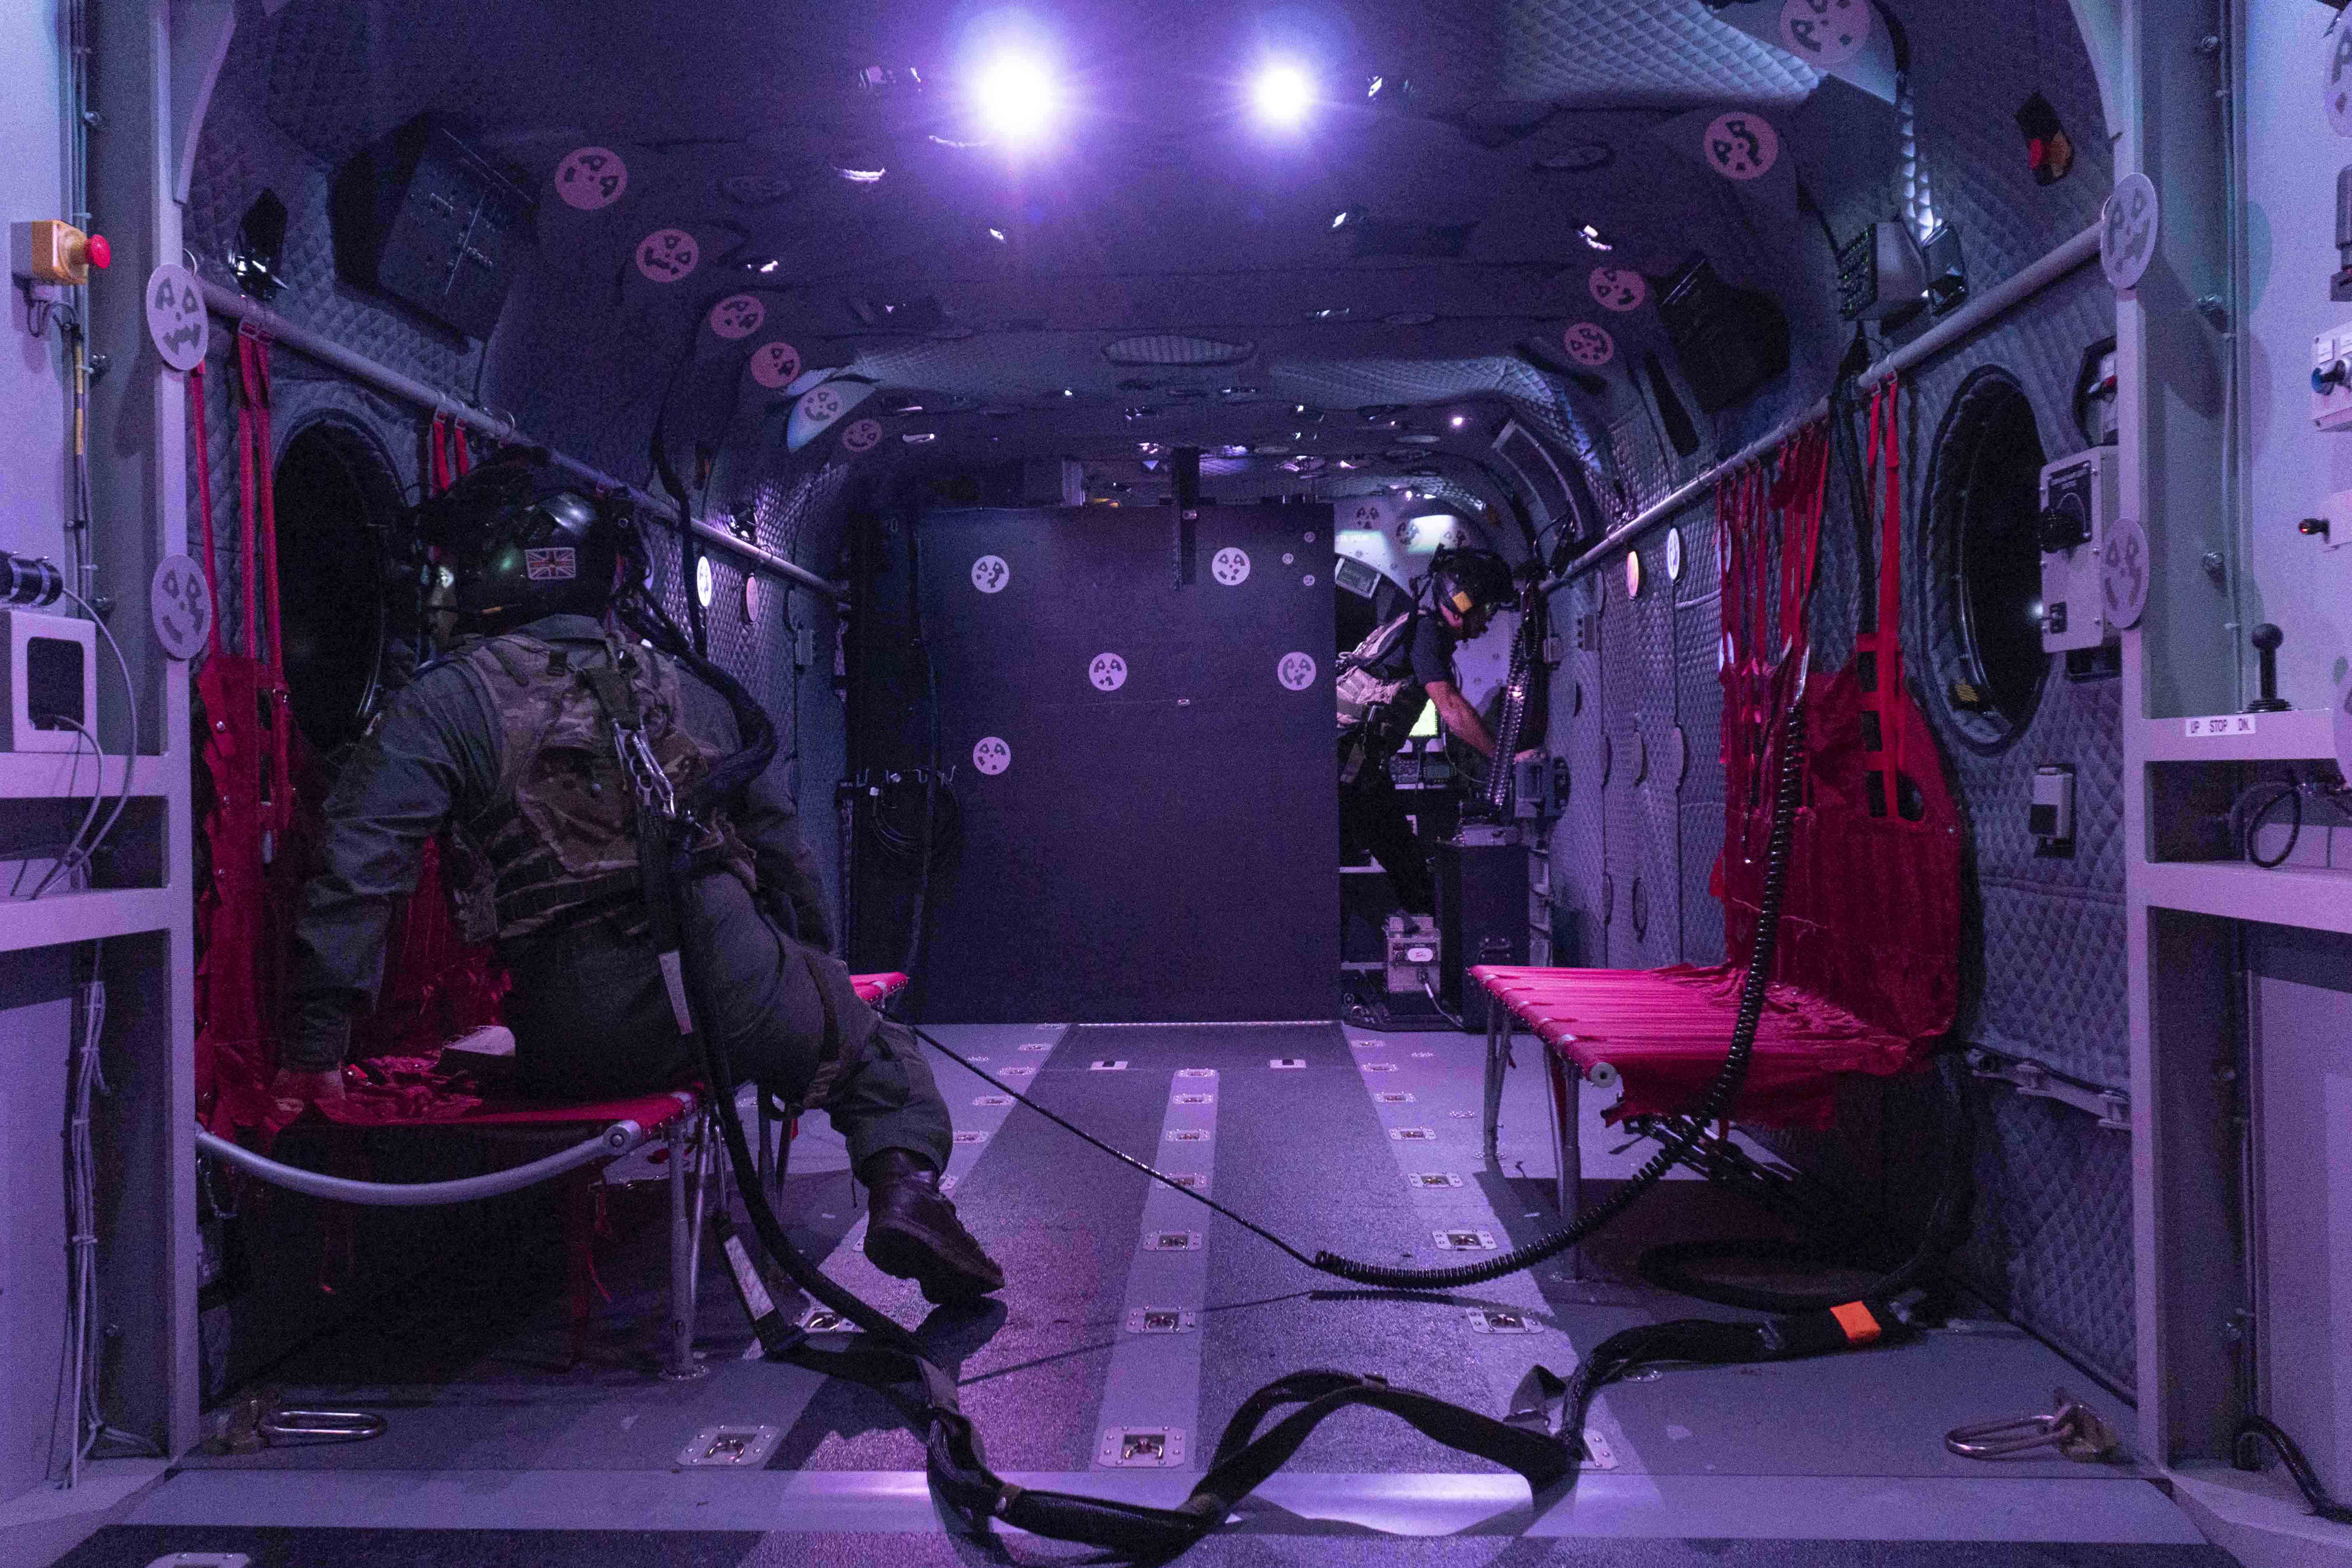 Chinook simulator Defence Equipment & Support